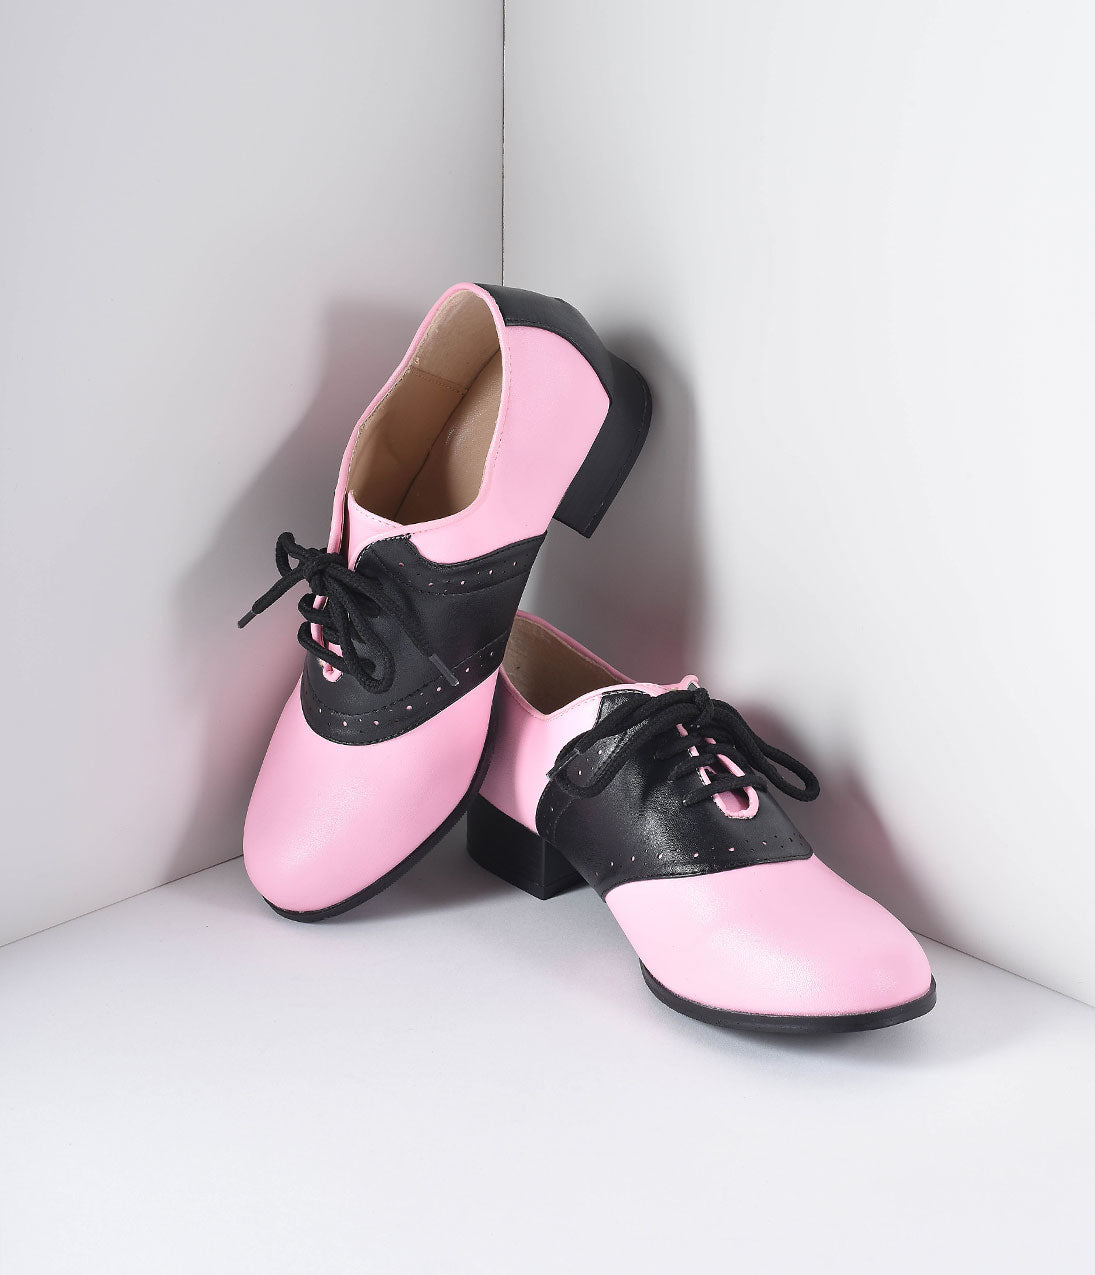 1950s Style Shoes | Heels, Flats, Saddle Shoes Retro Style Pink  Black Two Tone Saddle Shoes $42.00 AT vintagedancer.com